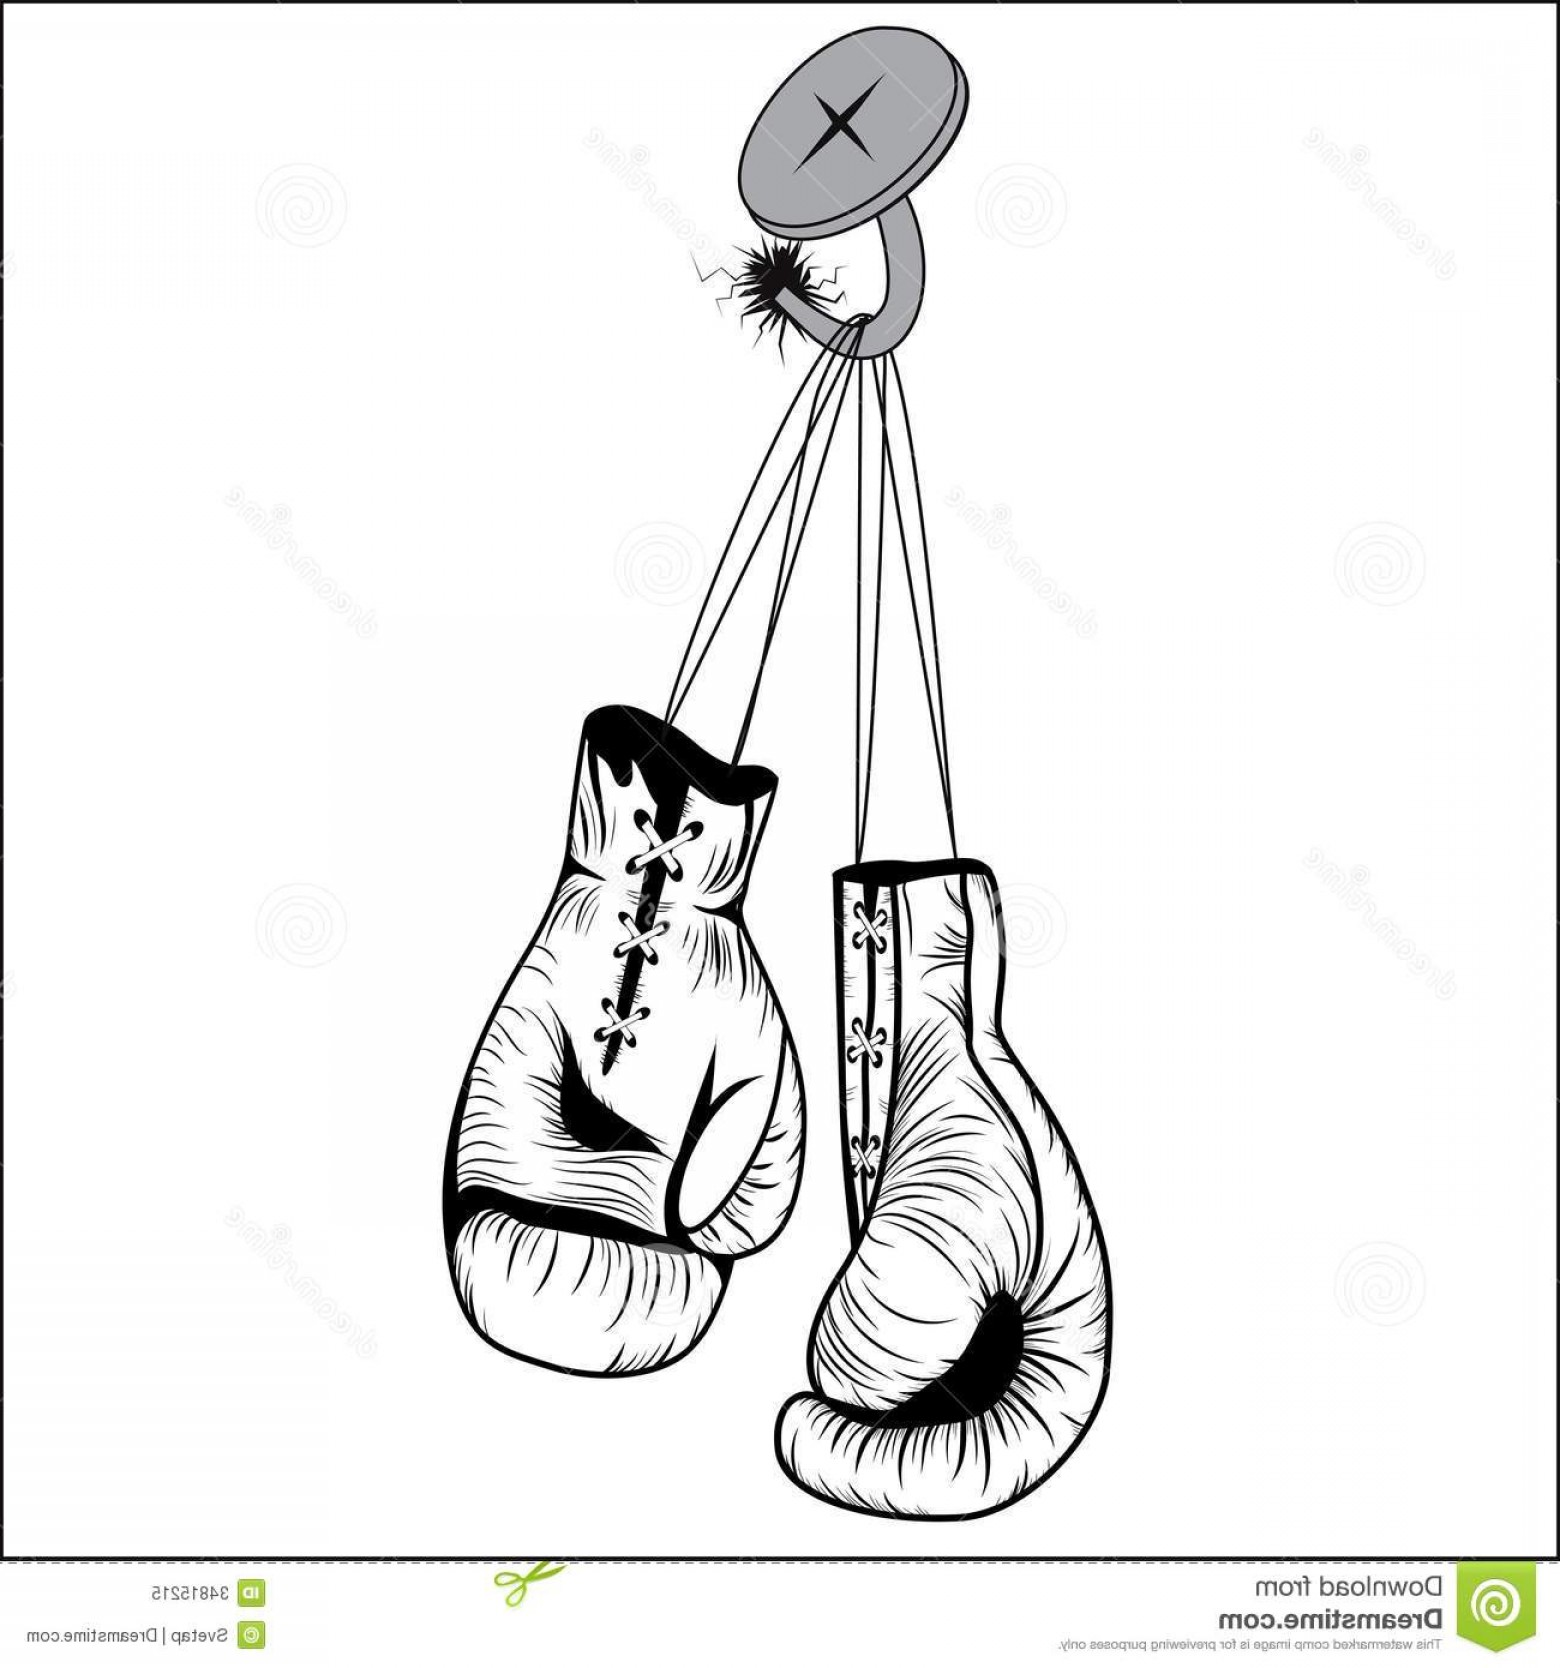 Boxing Gloves Vector Clip Art: Royalty Free Stock Photo Boxing Gloves Hang Laces Nailed To Wall As Business Sport Concept Person Retires Give Up Fight Prepares Image